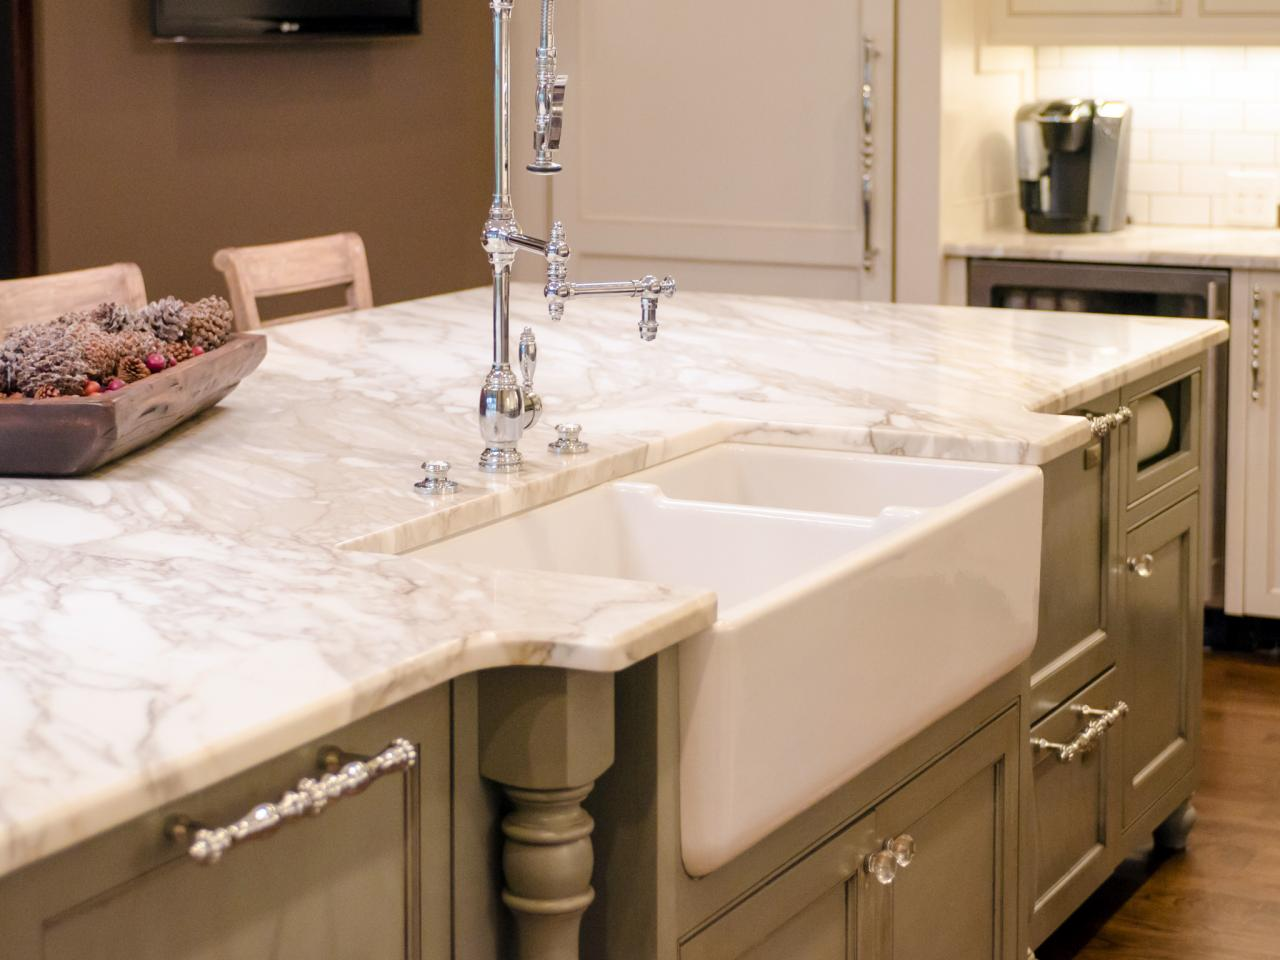 french country kitchen sinks - 15 rules for installing | interior